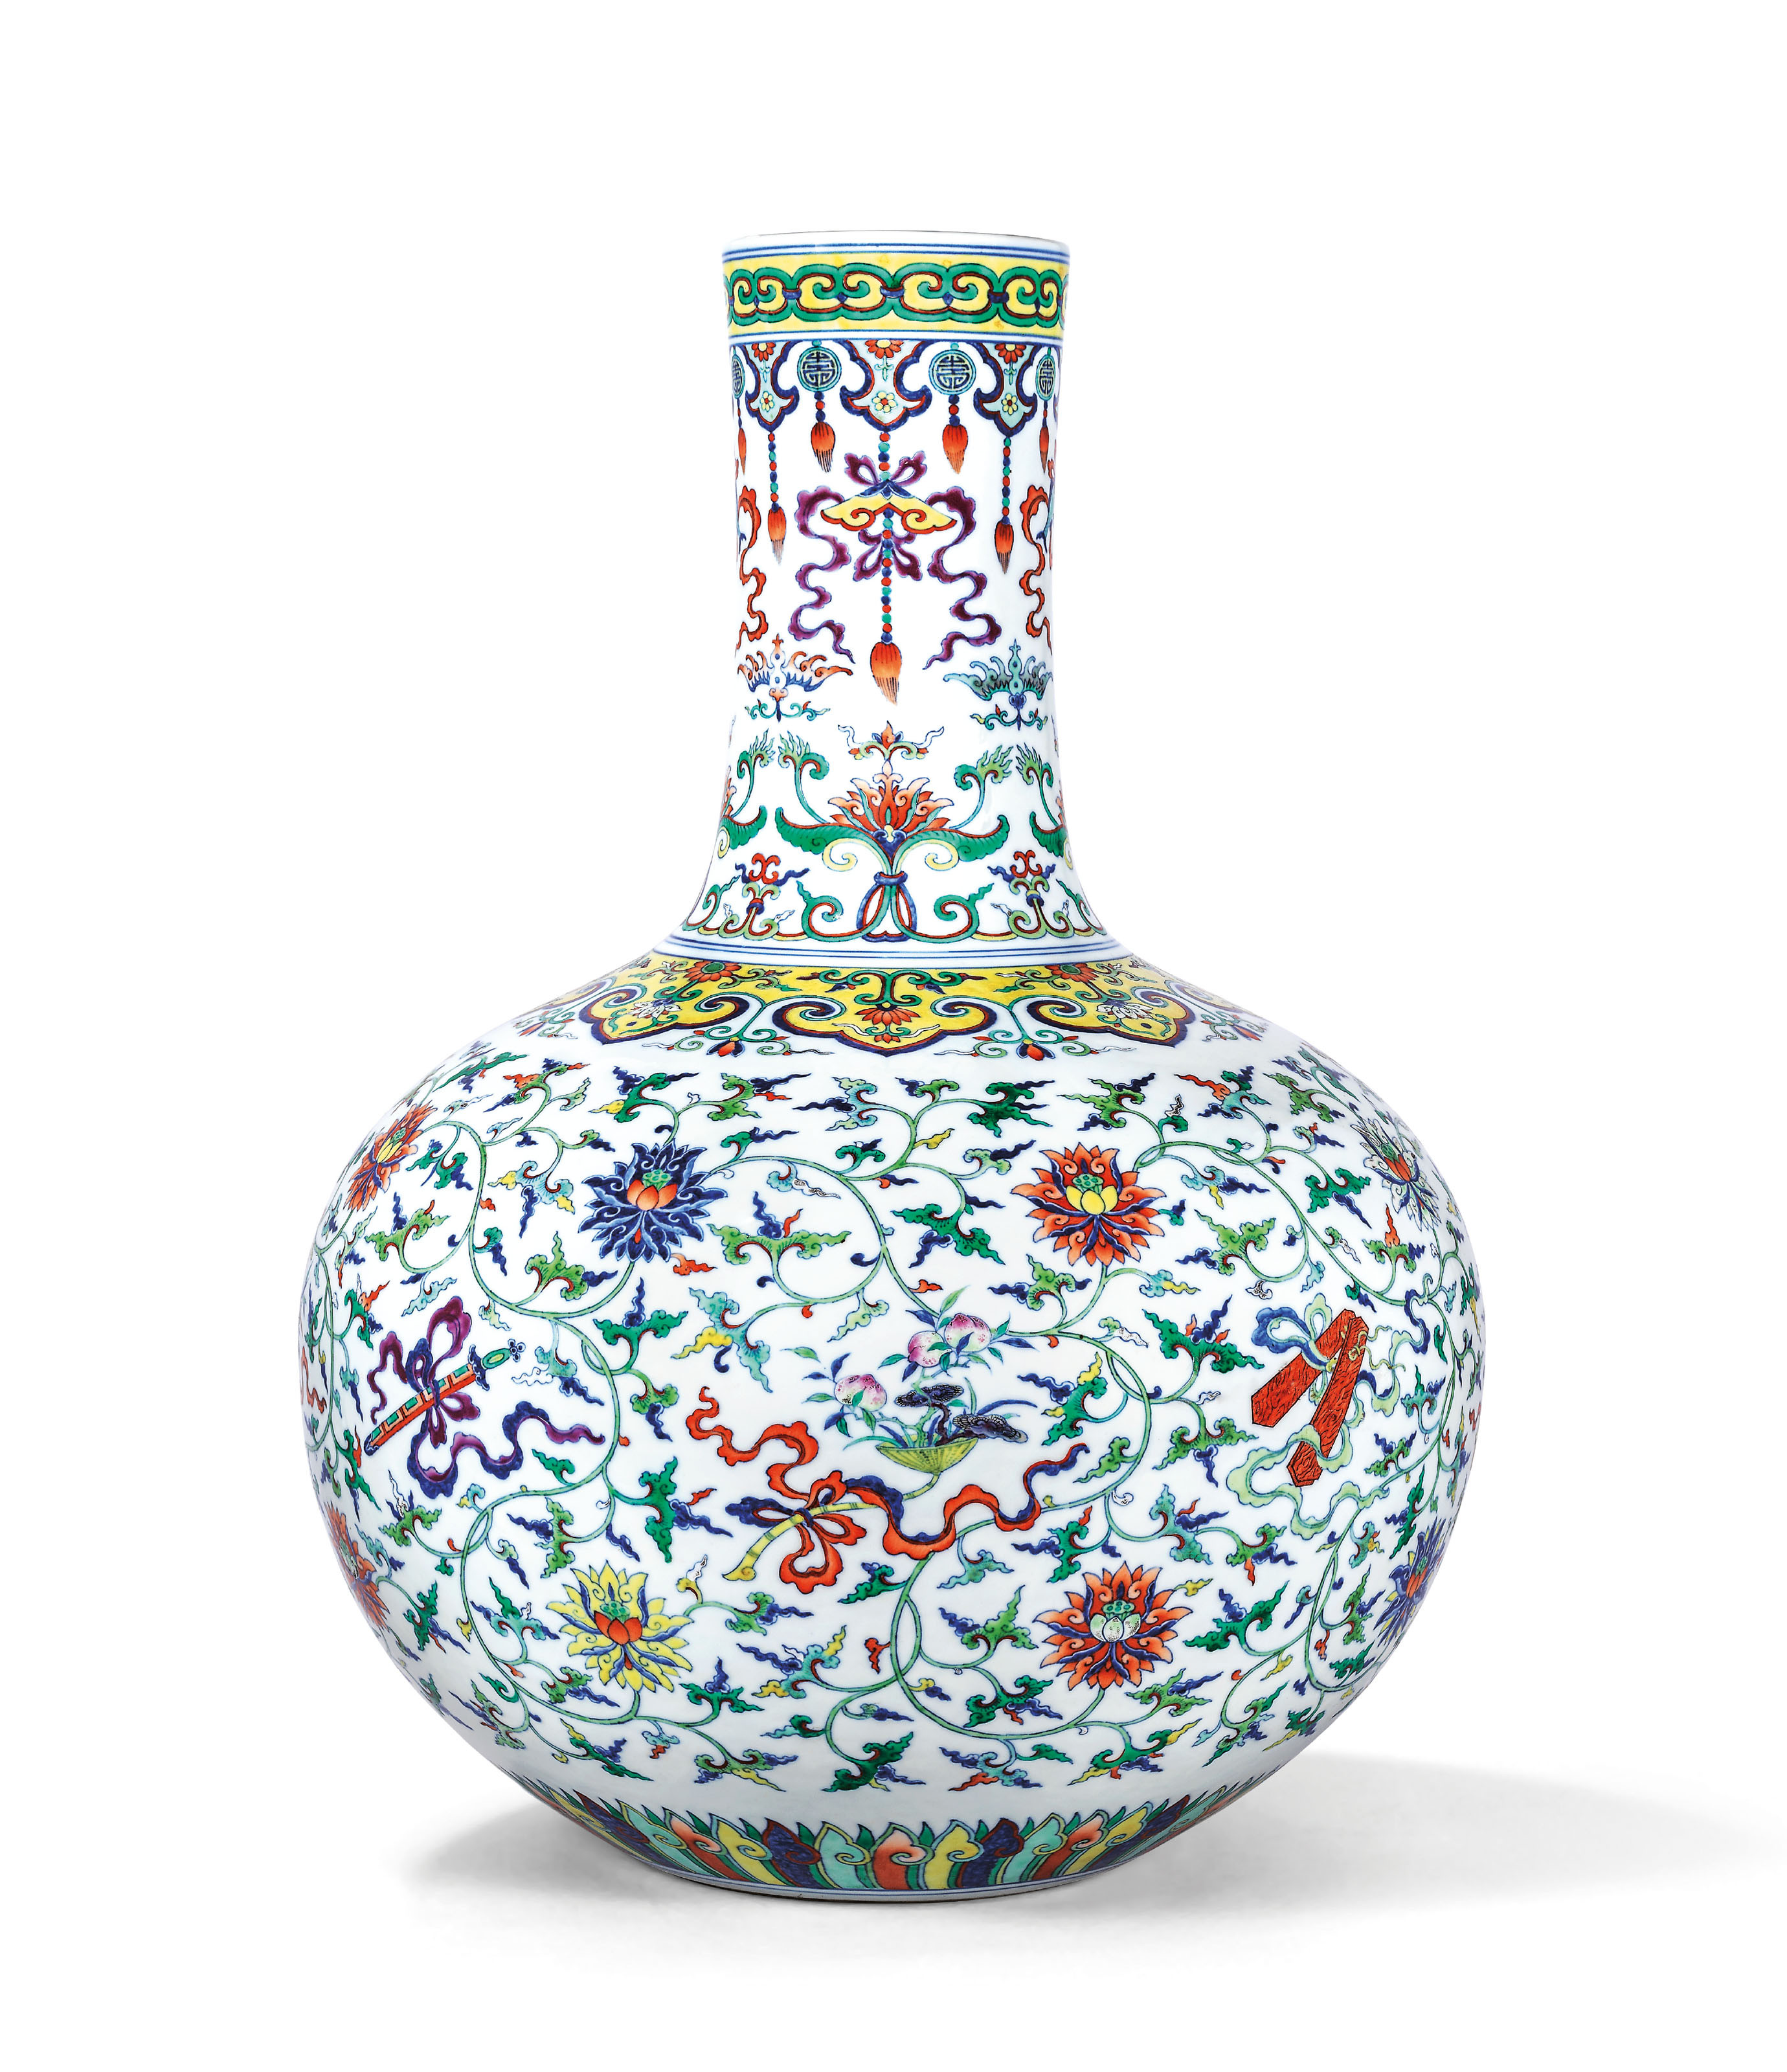 waterford balmoral 10 inch vase of chinese art with regard to this rare chinese vase languished in storage at an oklahoma museum for over a decade then it sold for 14 5 million